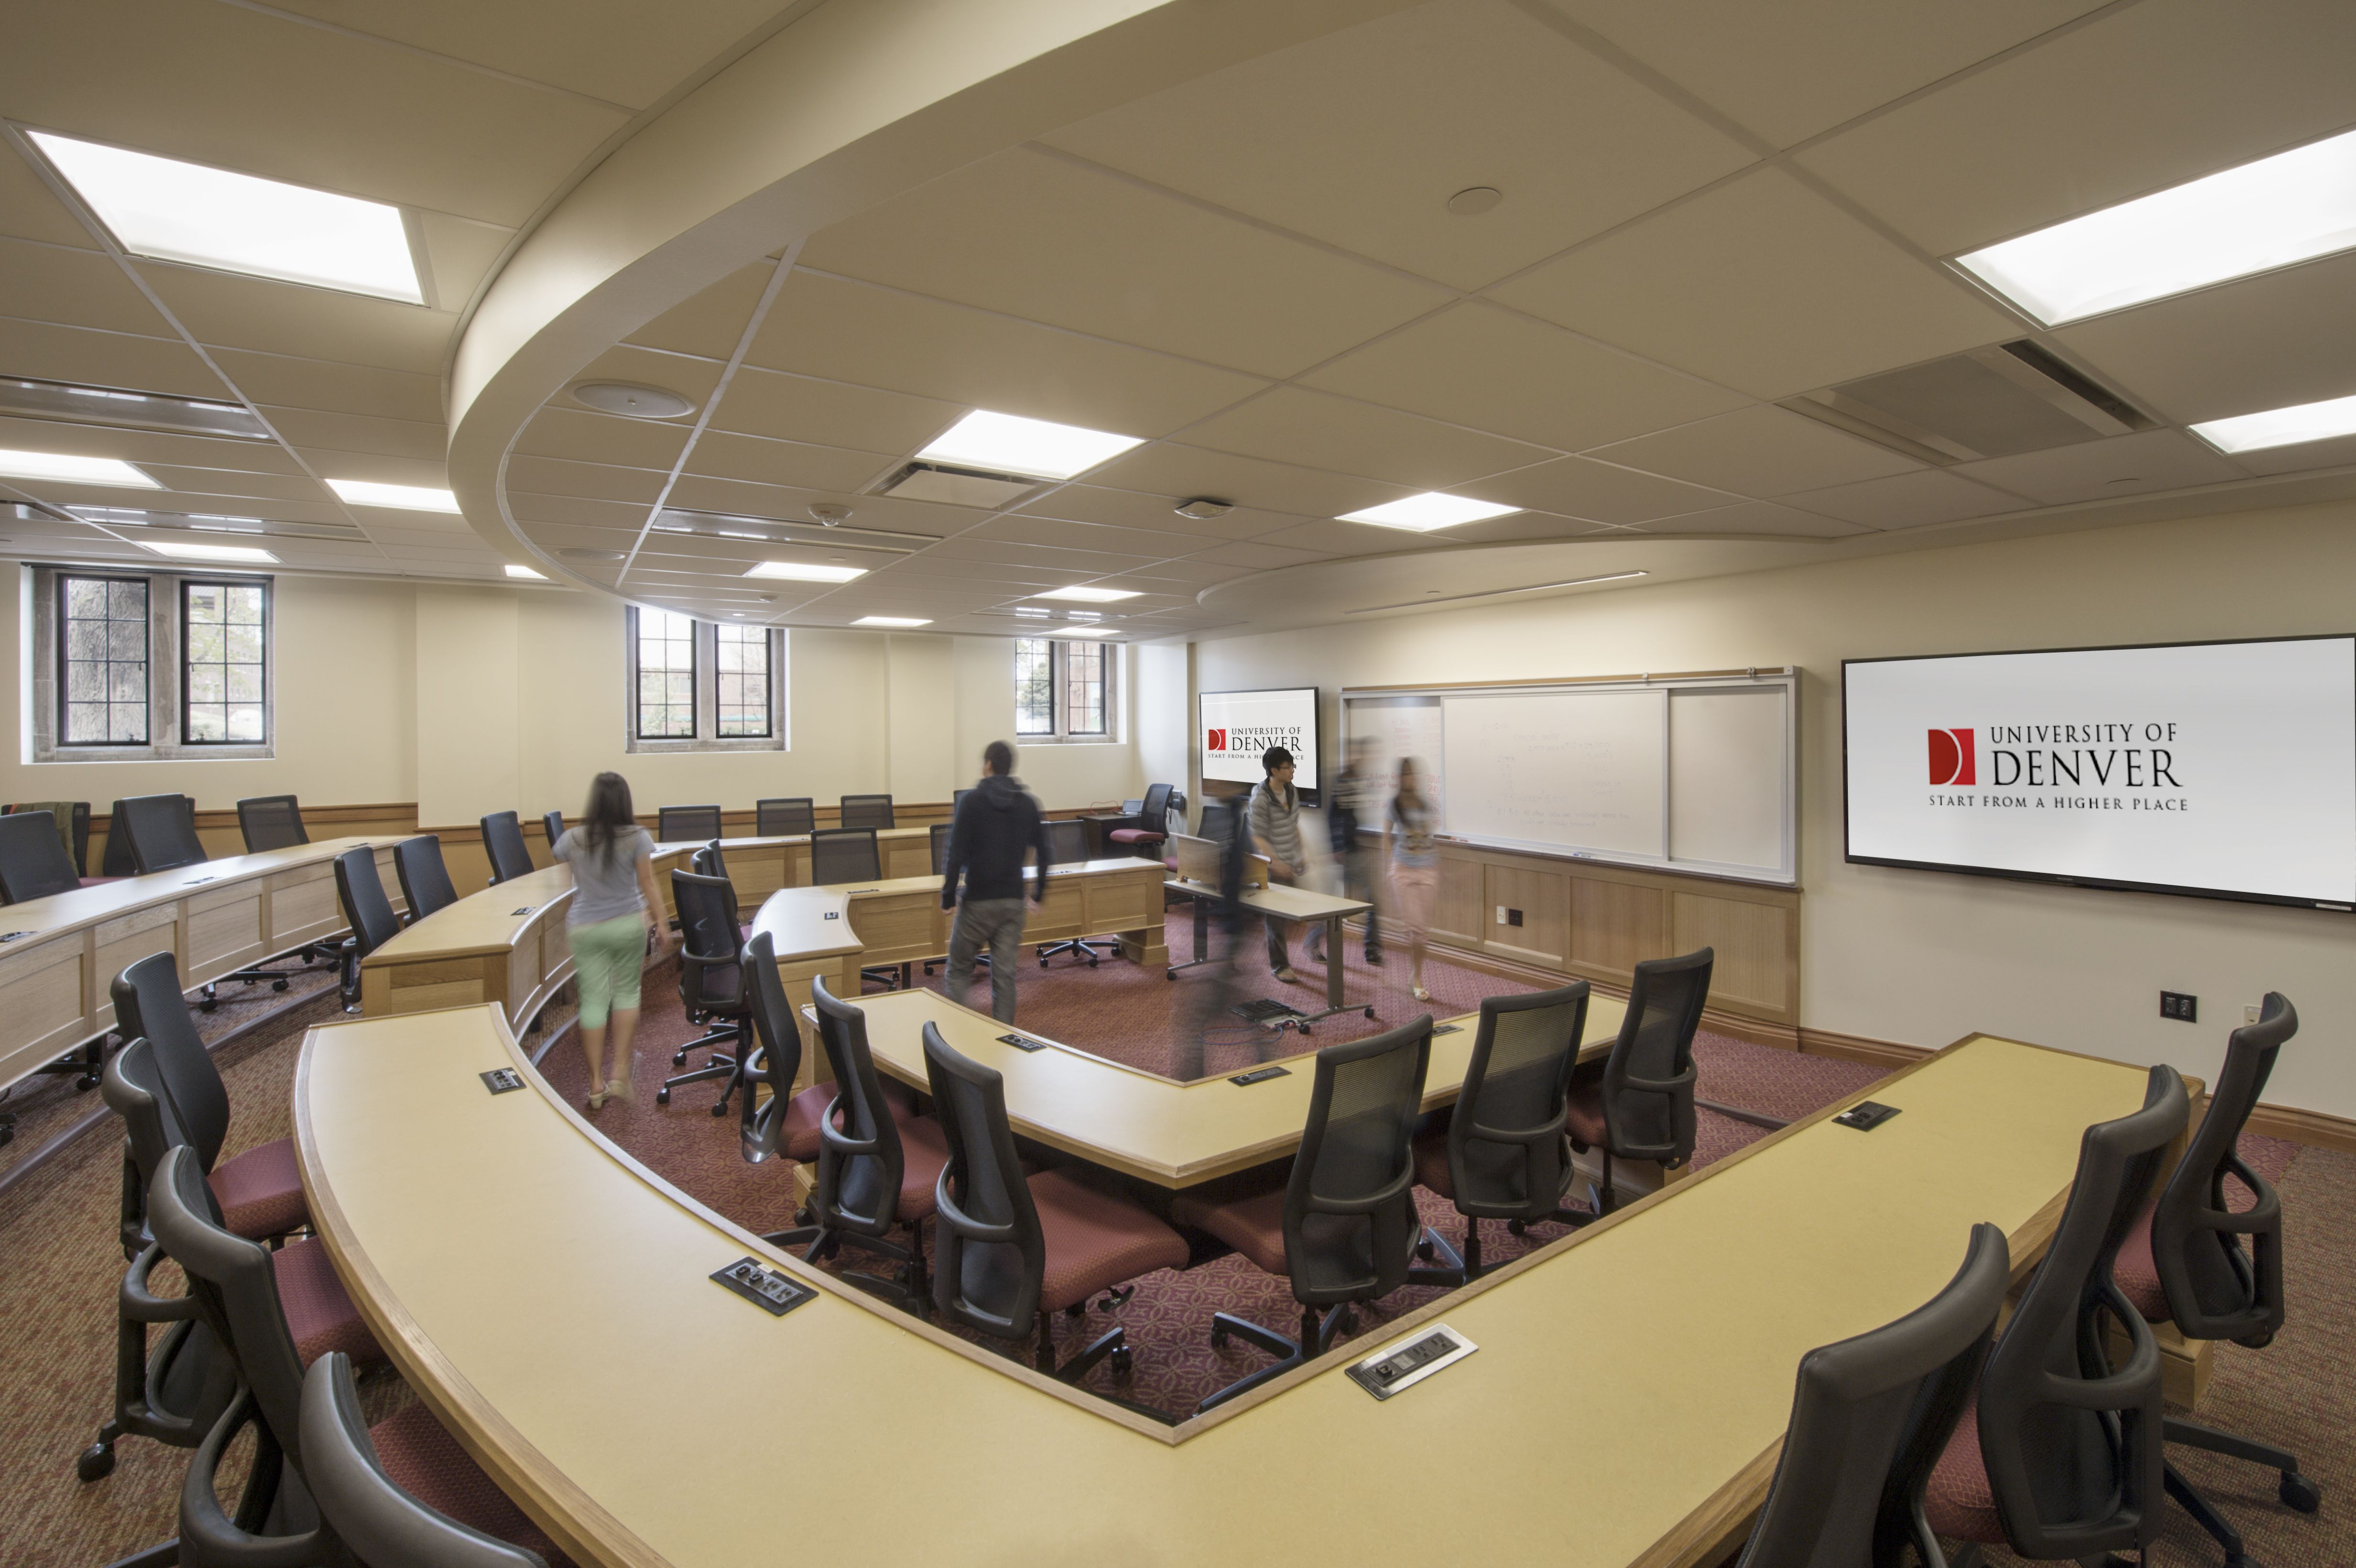 Tiered Classroom Design Standards ~ University of denver margery reed hall tiered classroom